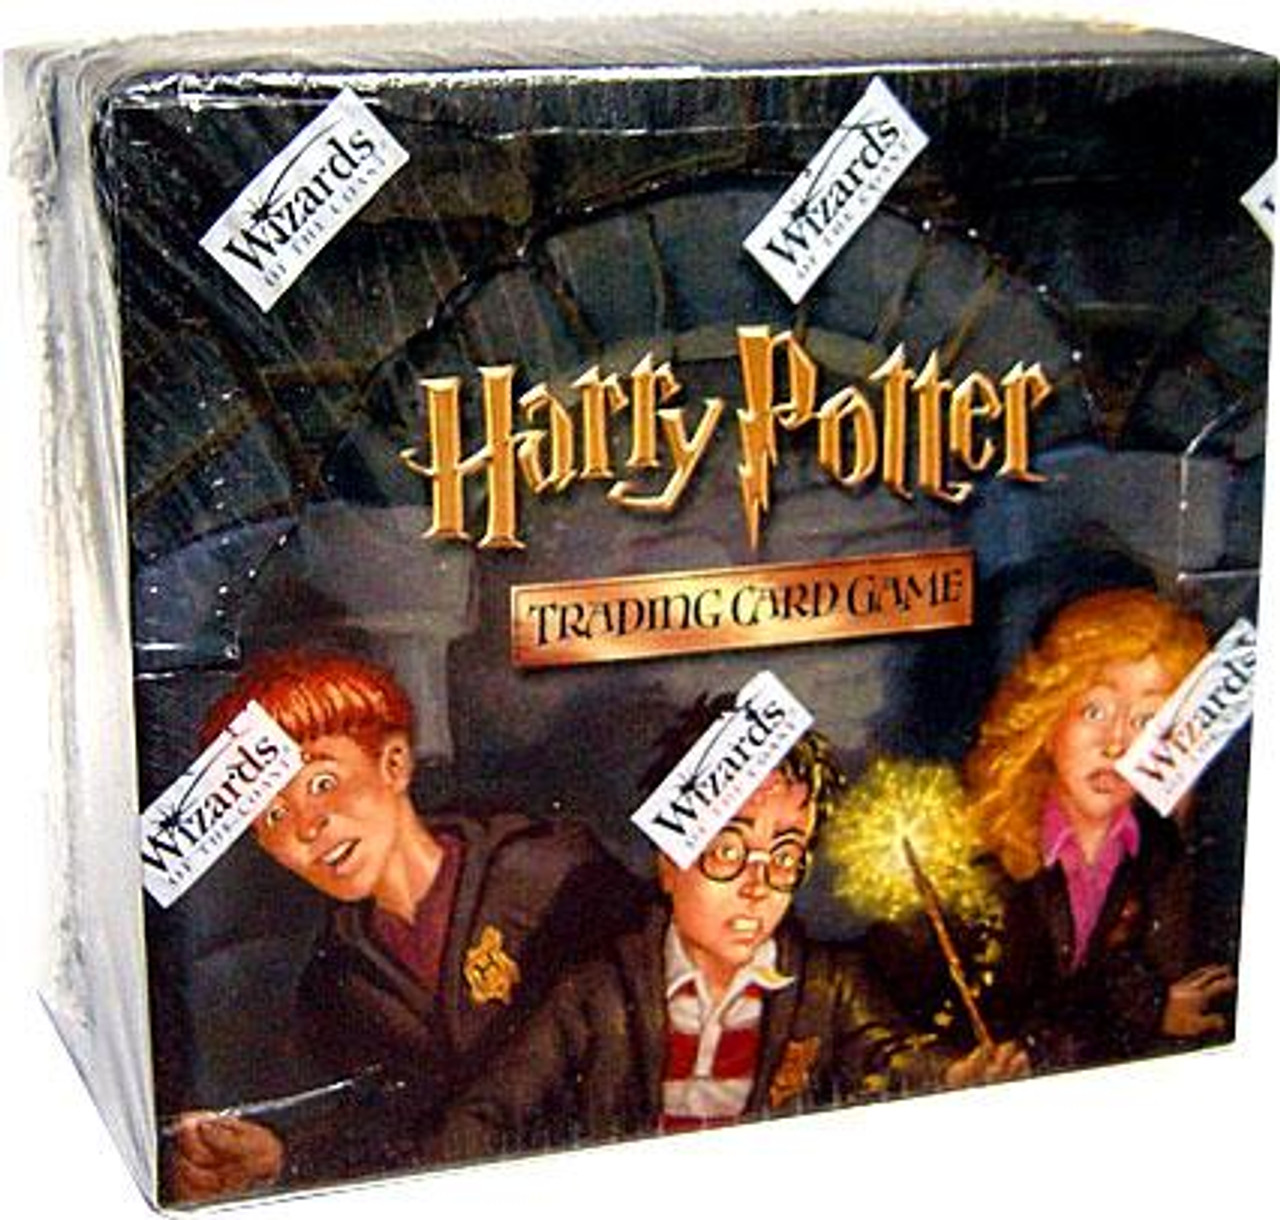 Harry Potter Trading Card Game Adventure at Hogwarts Booster Box [36 Packs]